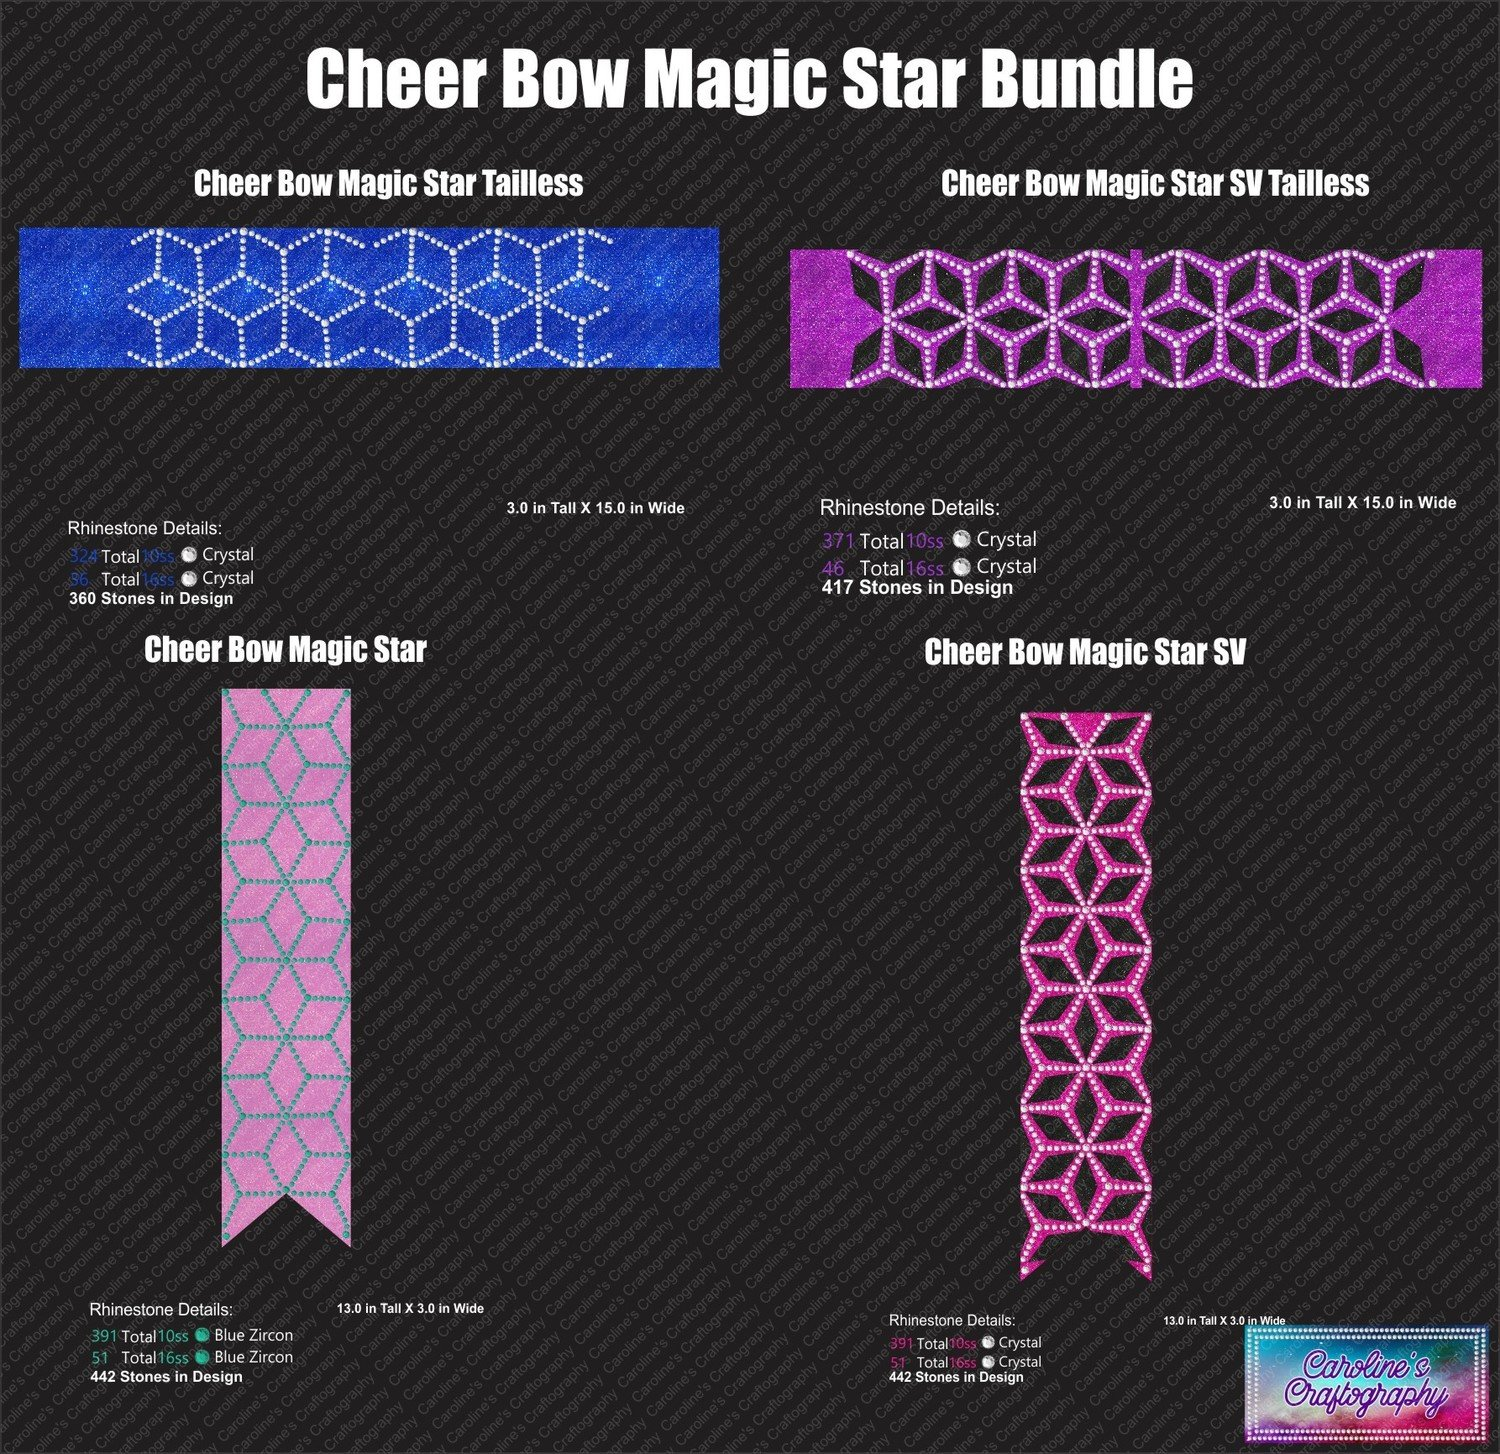 Cheer Bow Magic Star Bundle